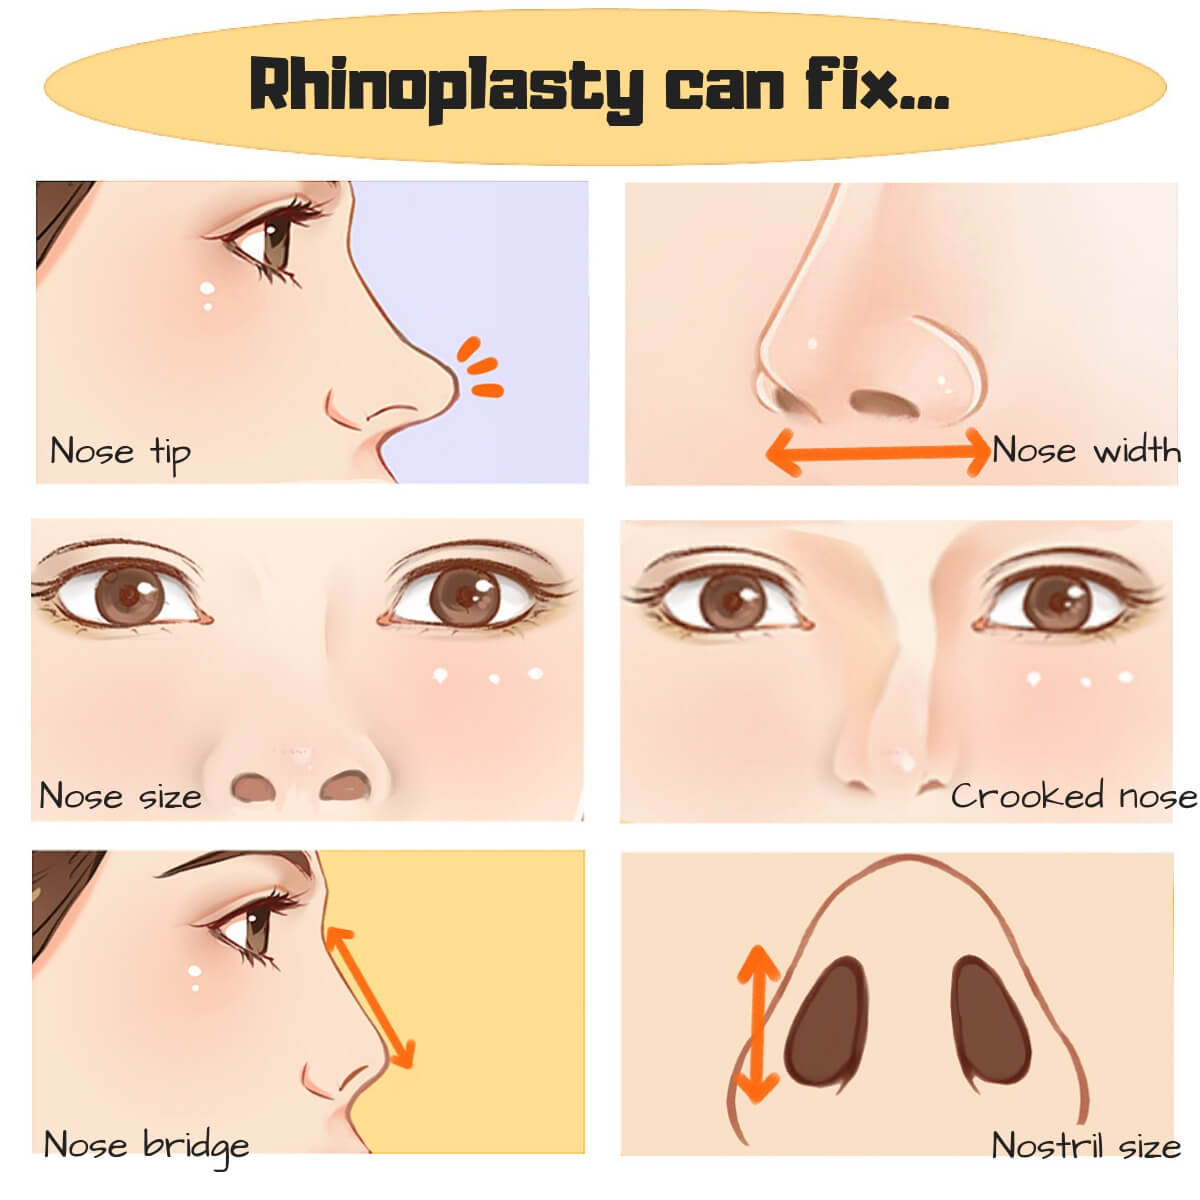 Rhinoplasty or Non-Surgical Nose Jobs? | Erufu Care